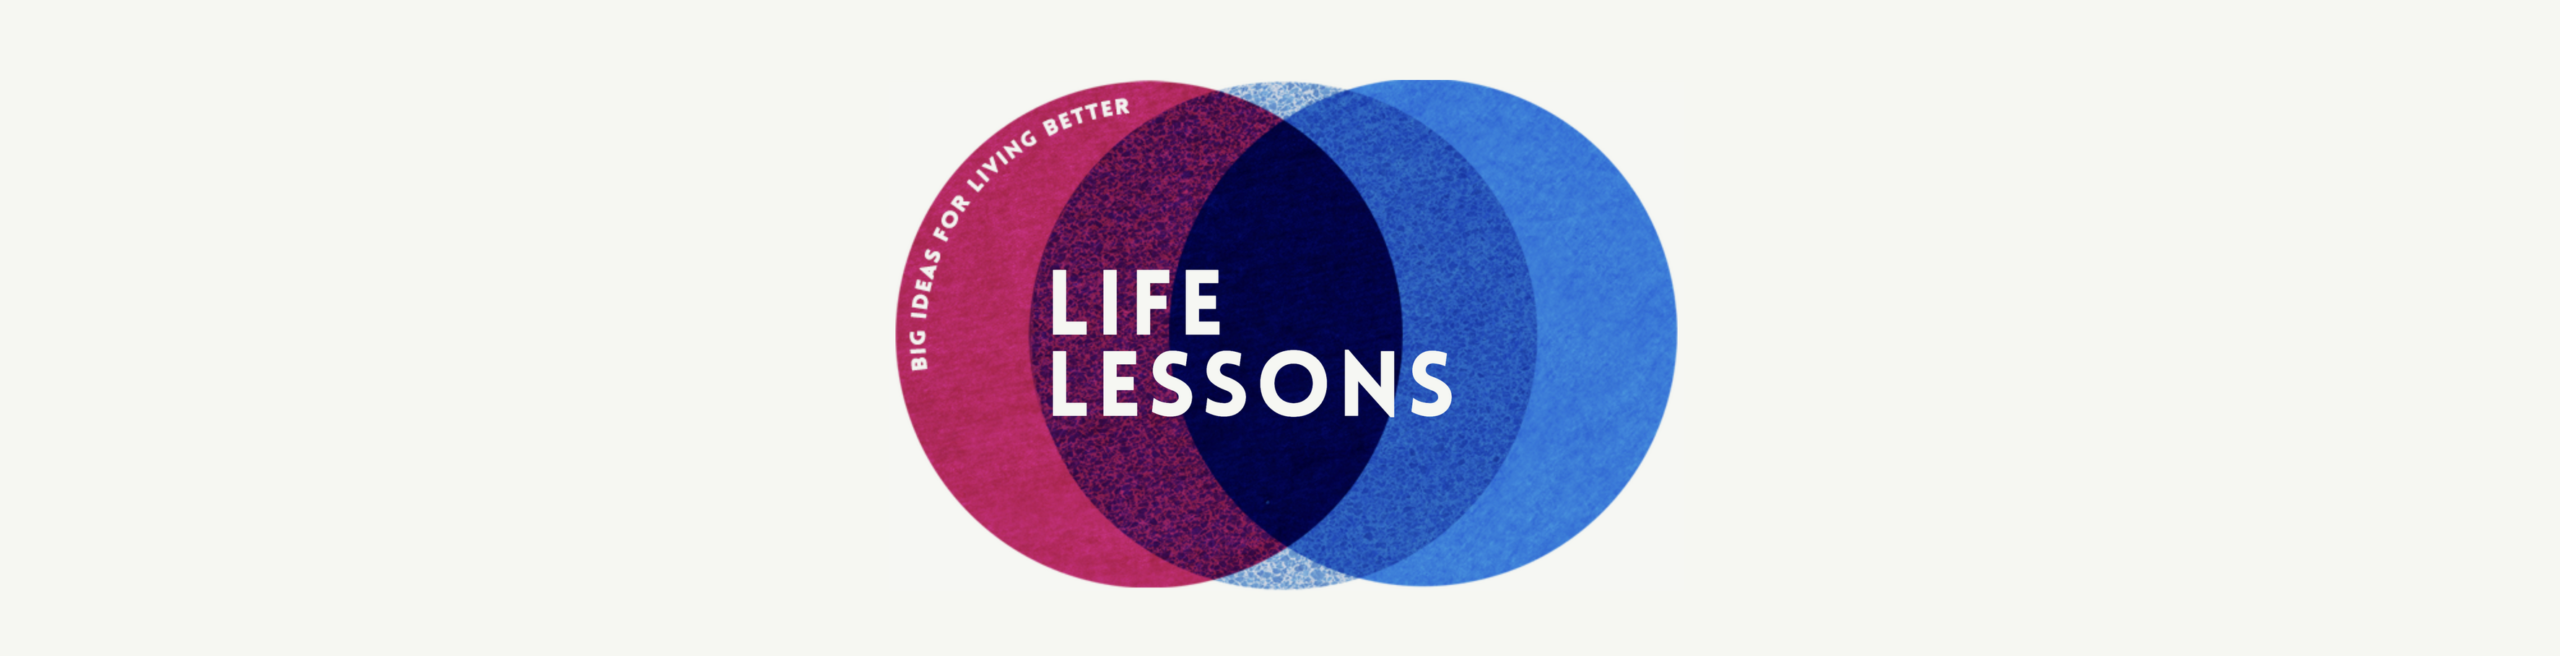 Life lessons feastival - thrive magazine